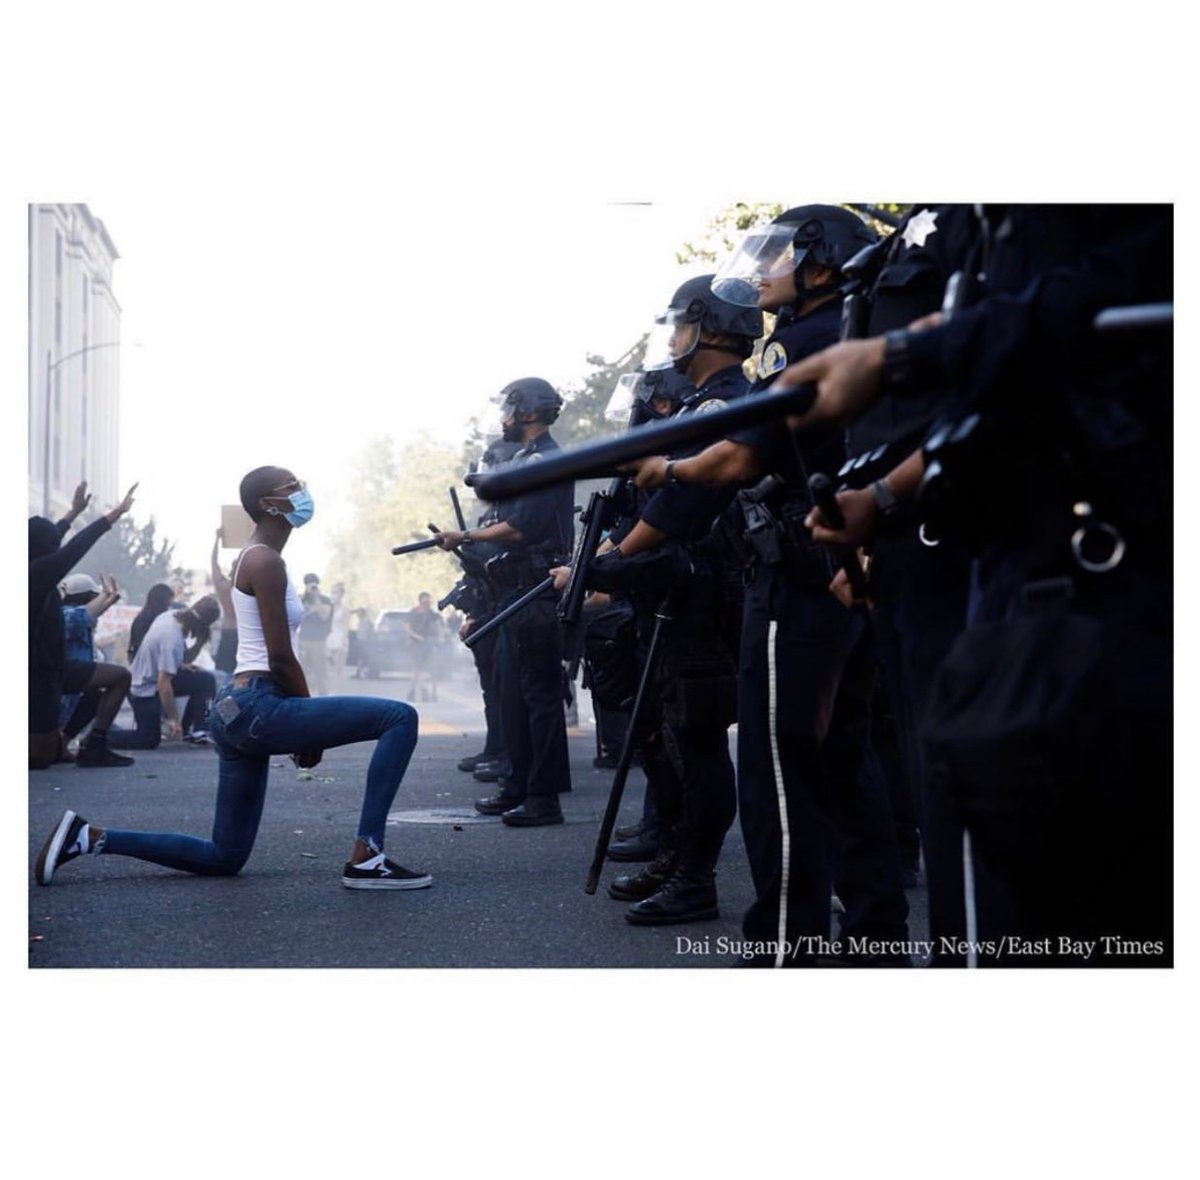 POWERFUL image by @daisugano during a protest in San Jose yesterday. #GeorgeFloydprotest #BlackLivesMatter